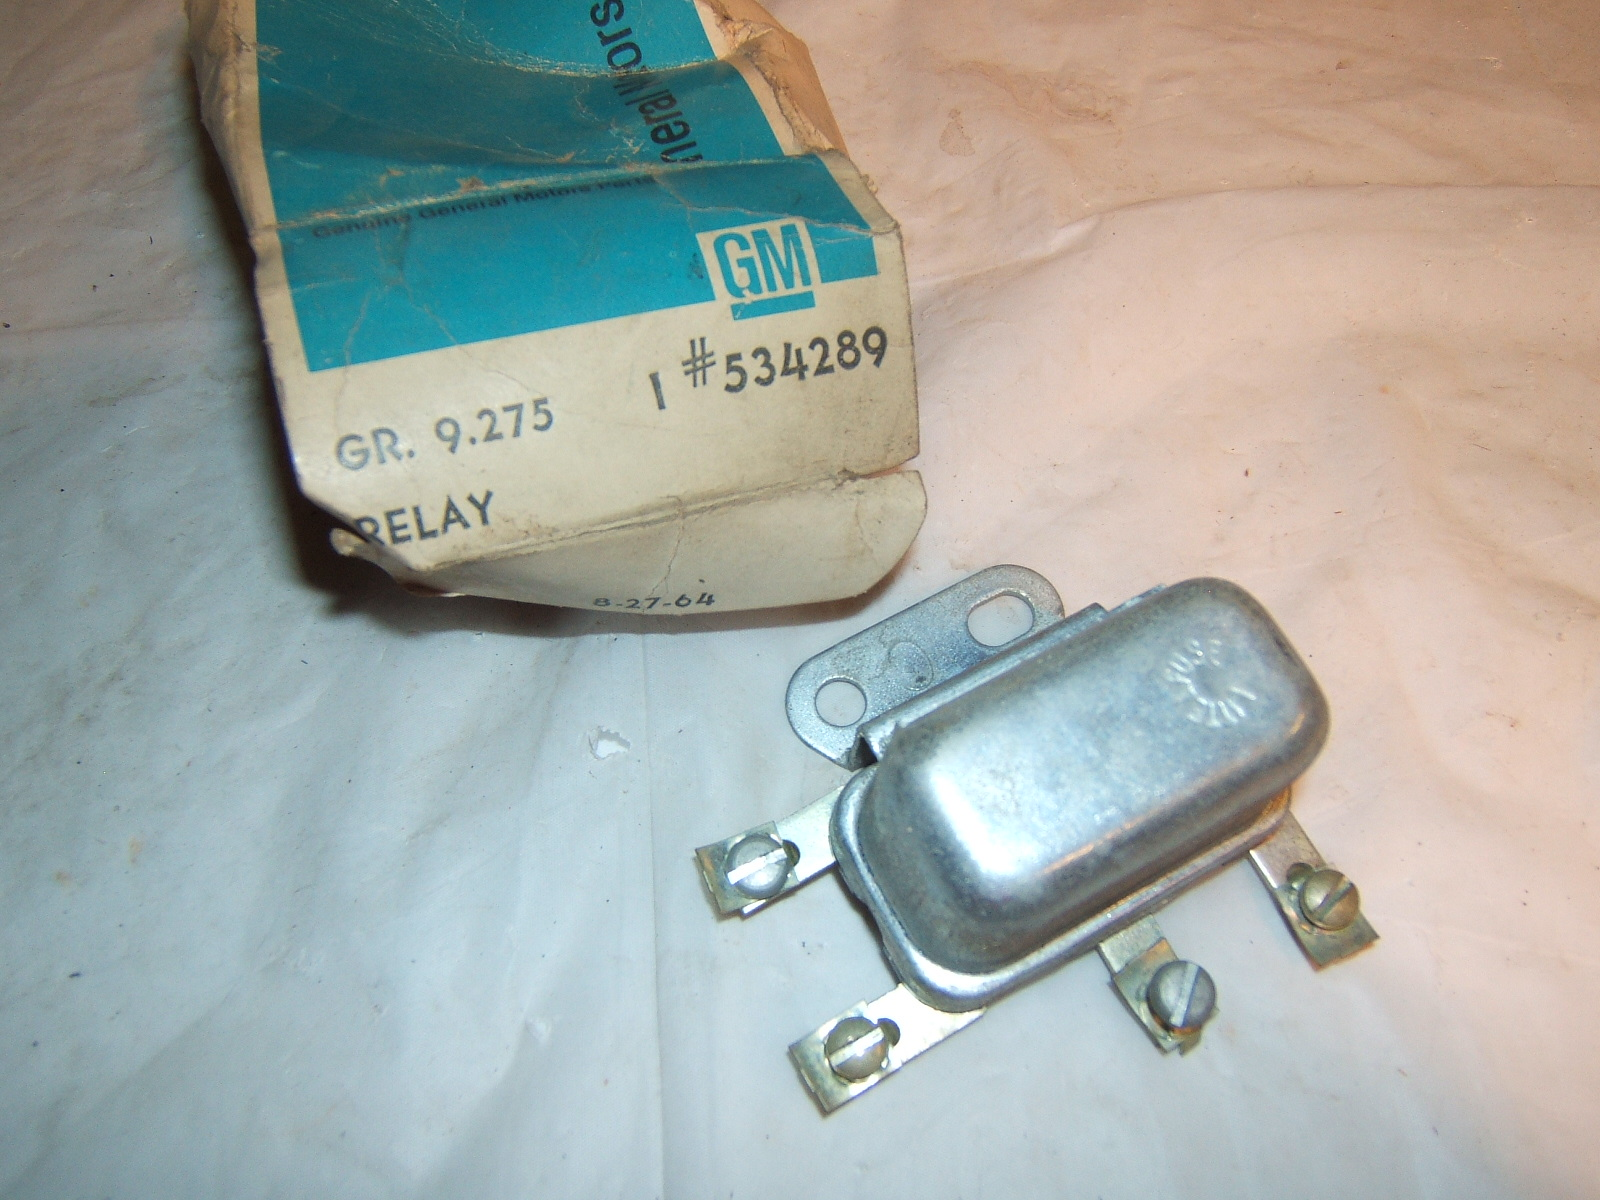 1959 1960 Pontiac Master air conditioning relay nos 534289 (a 534289)      Upload Image     Link Online      Back to Lis